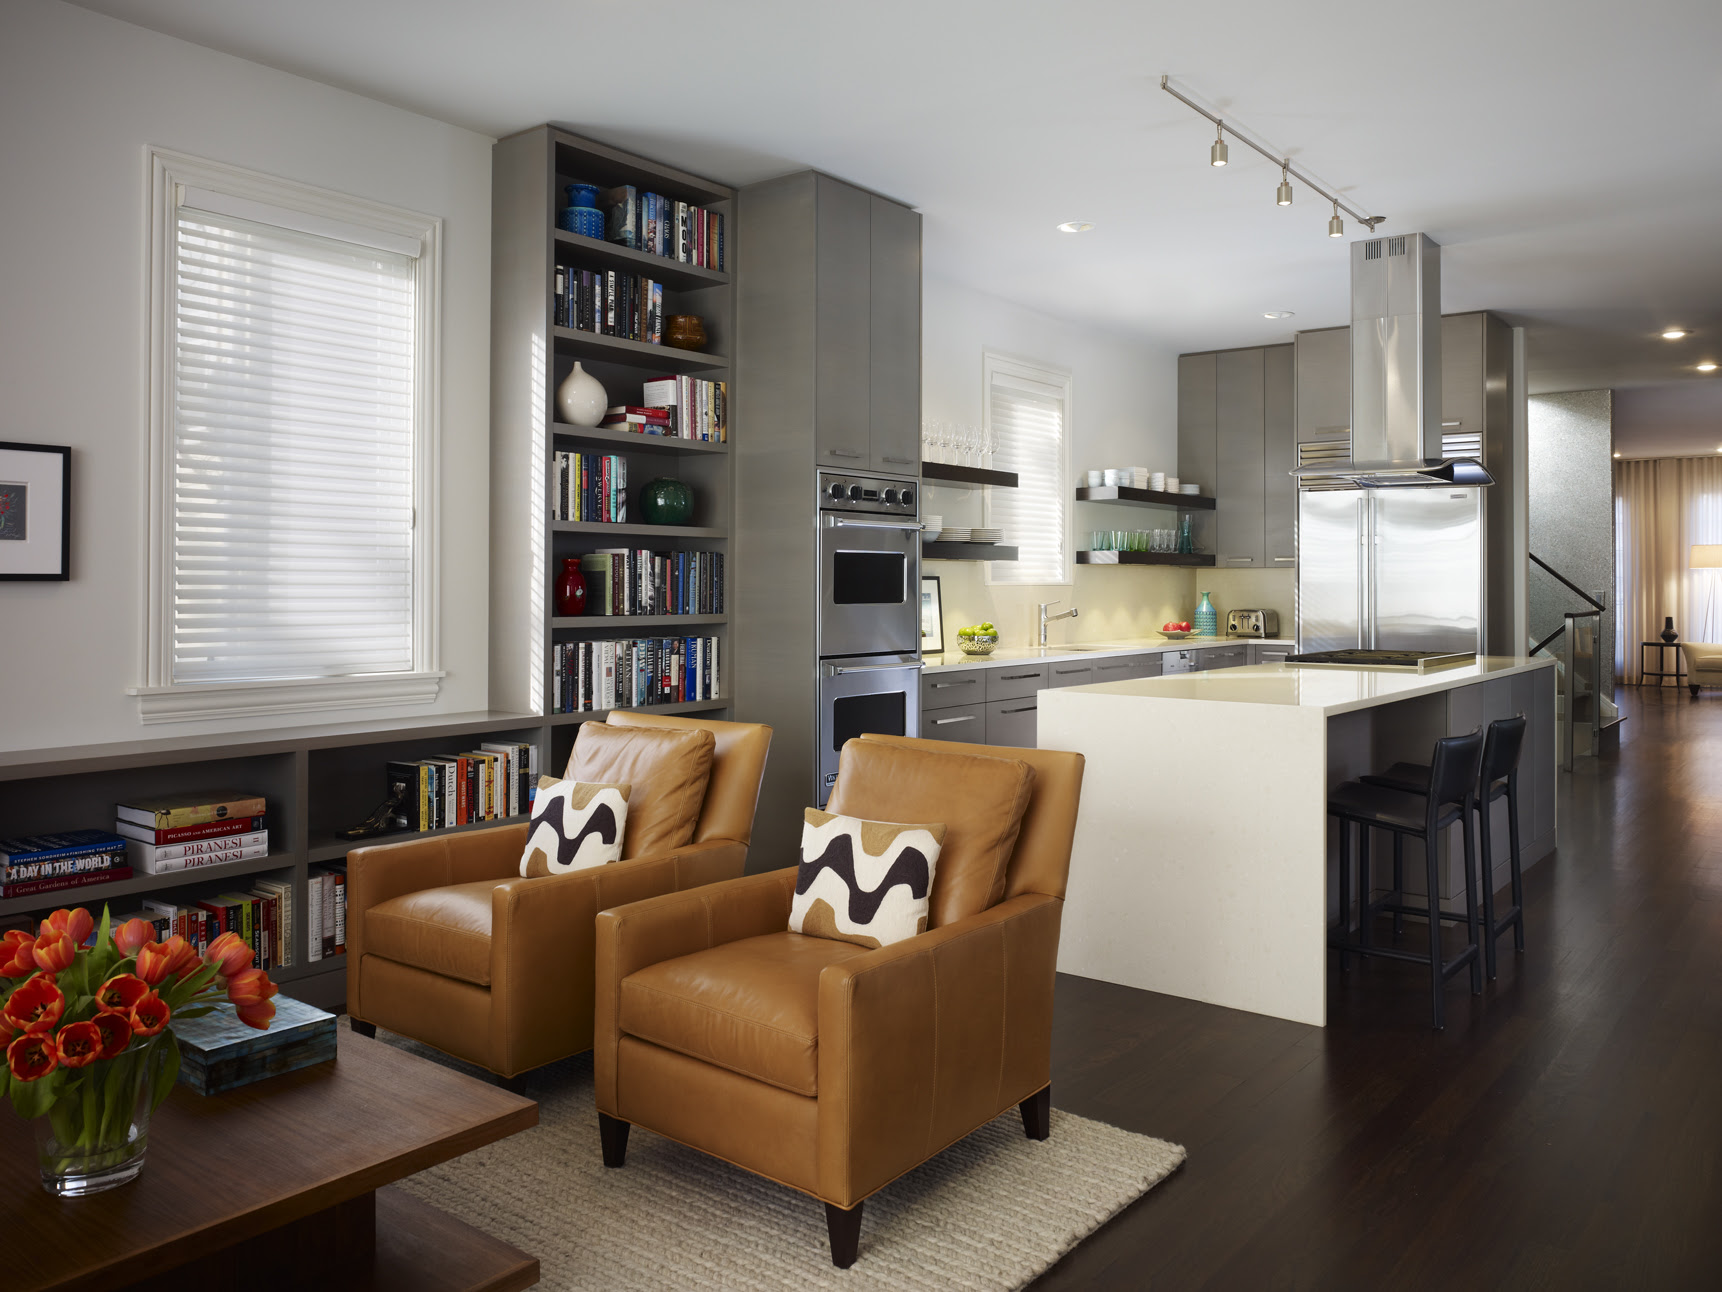 Modern Living Room Design: Breaking with One Past and ...